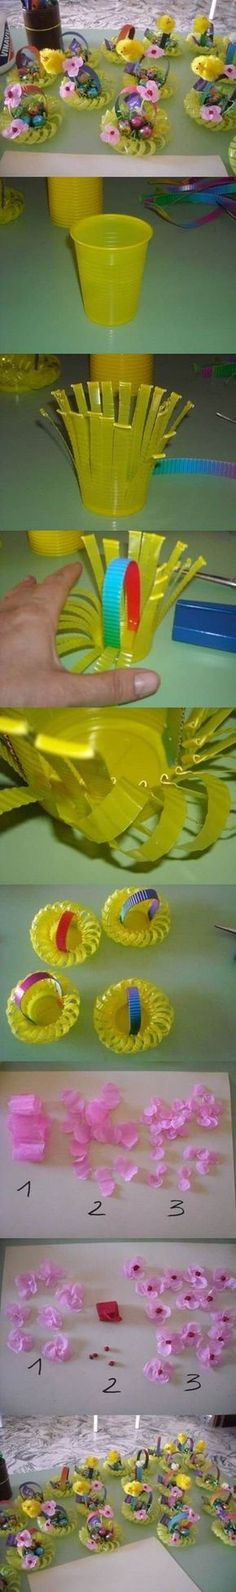 DIY Plastic Cup Flower Basket DIY Projects - so cute for Easter place cards, table decor, or giving little treats. Kids Crafts, Diy And Crafts, Paper Crafts, Spring Crafts, Holiday Crafts, Craft Tutorials, Craft Projects, Free Tutorials, Diy Y Manualidades